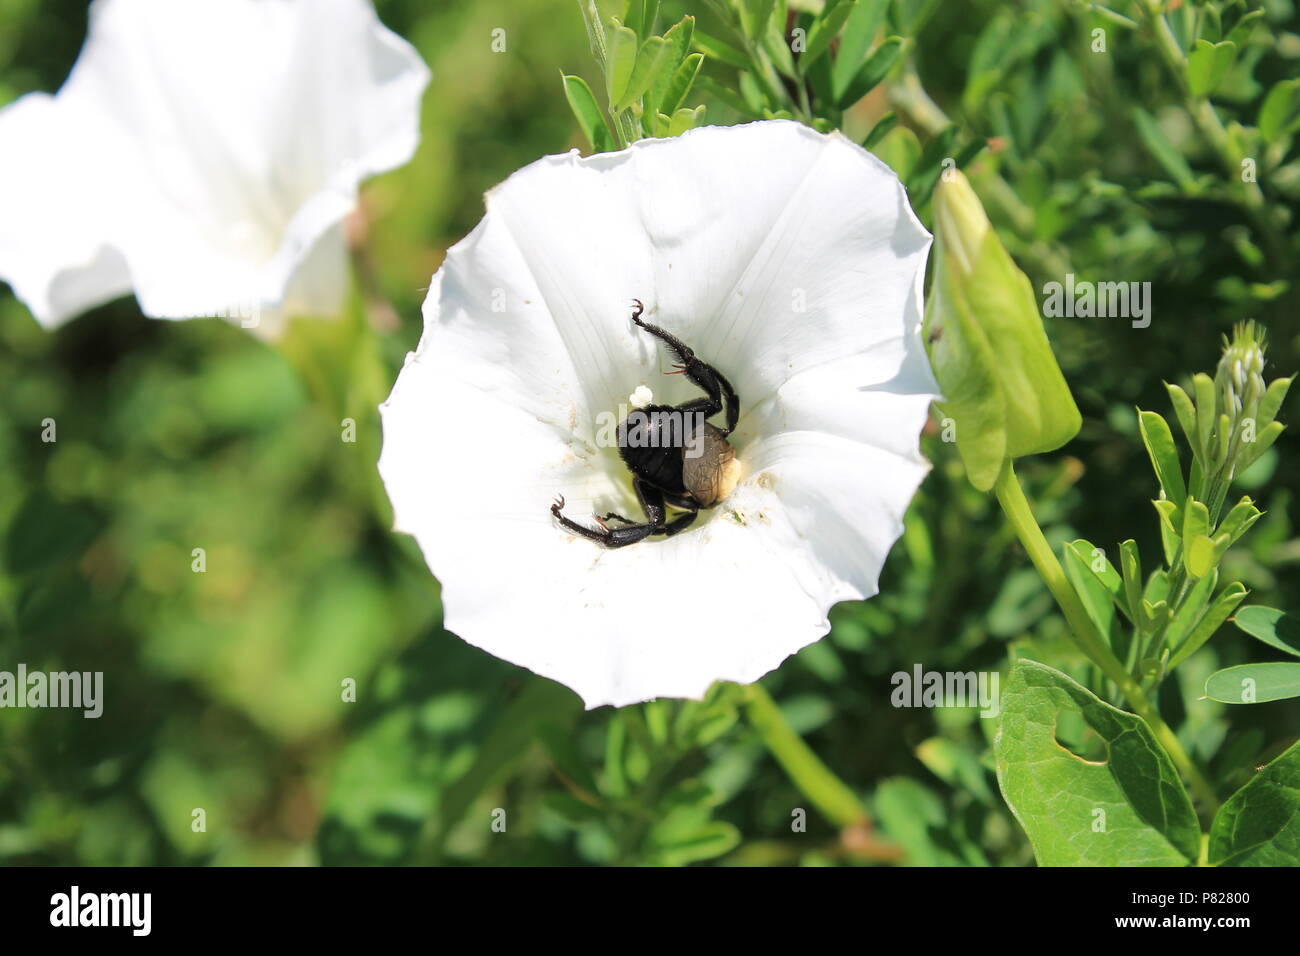 A honey bee makes the rounds with white flowers. - Stock Image